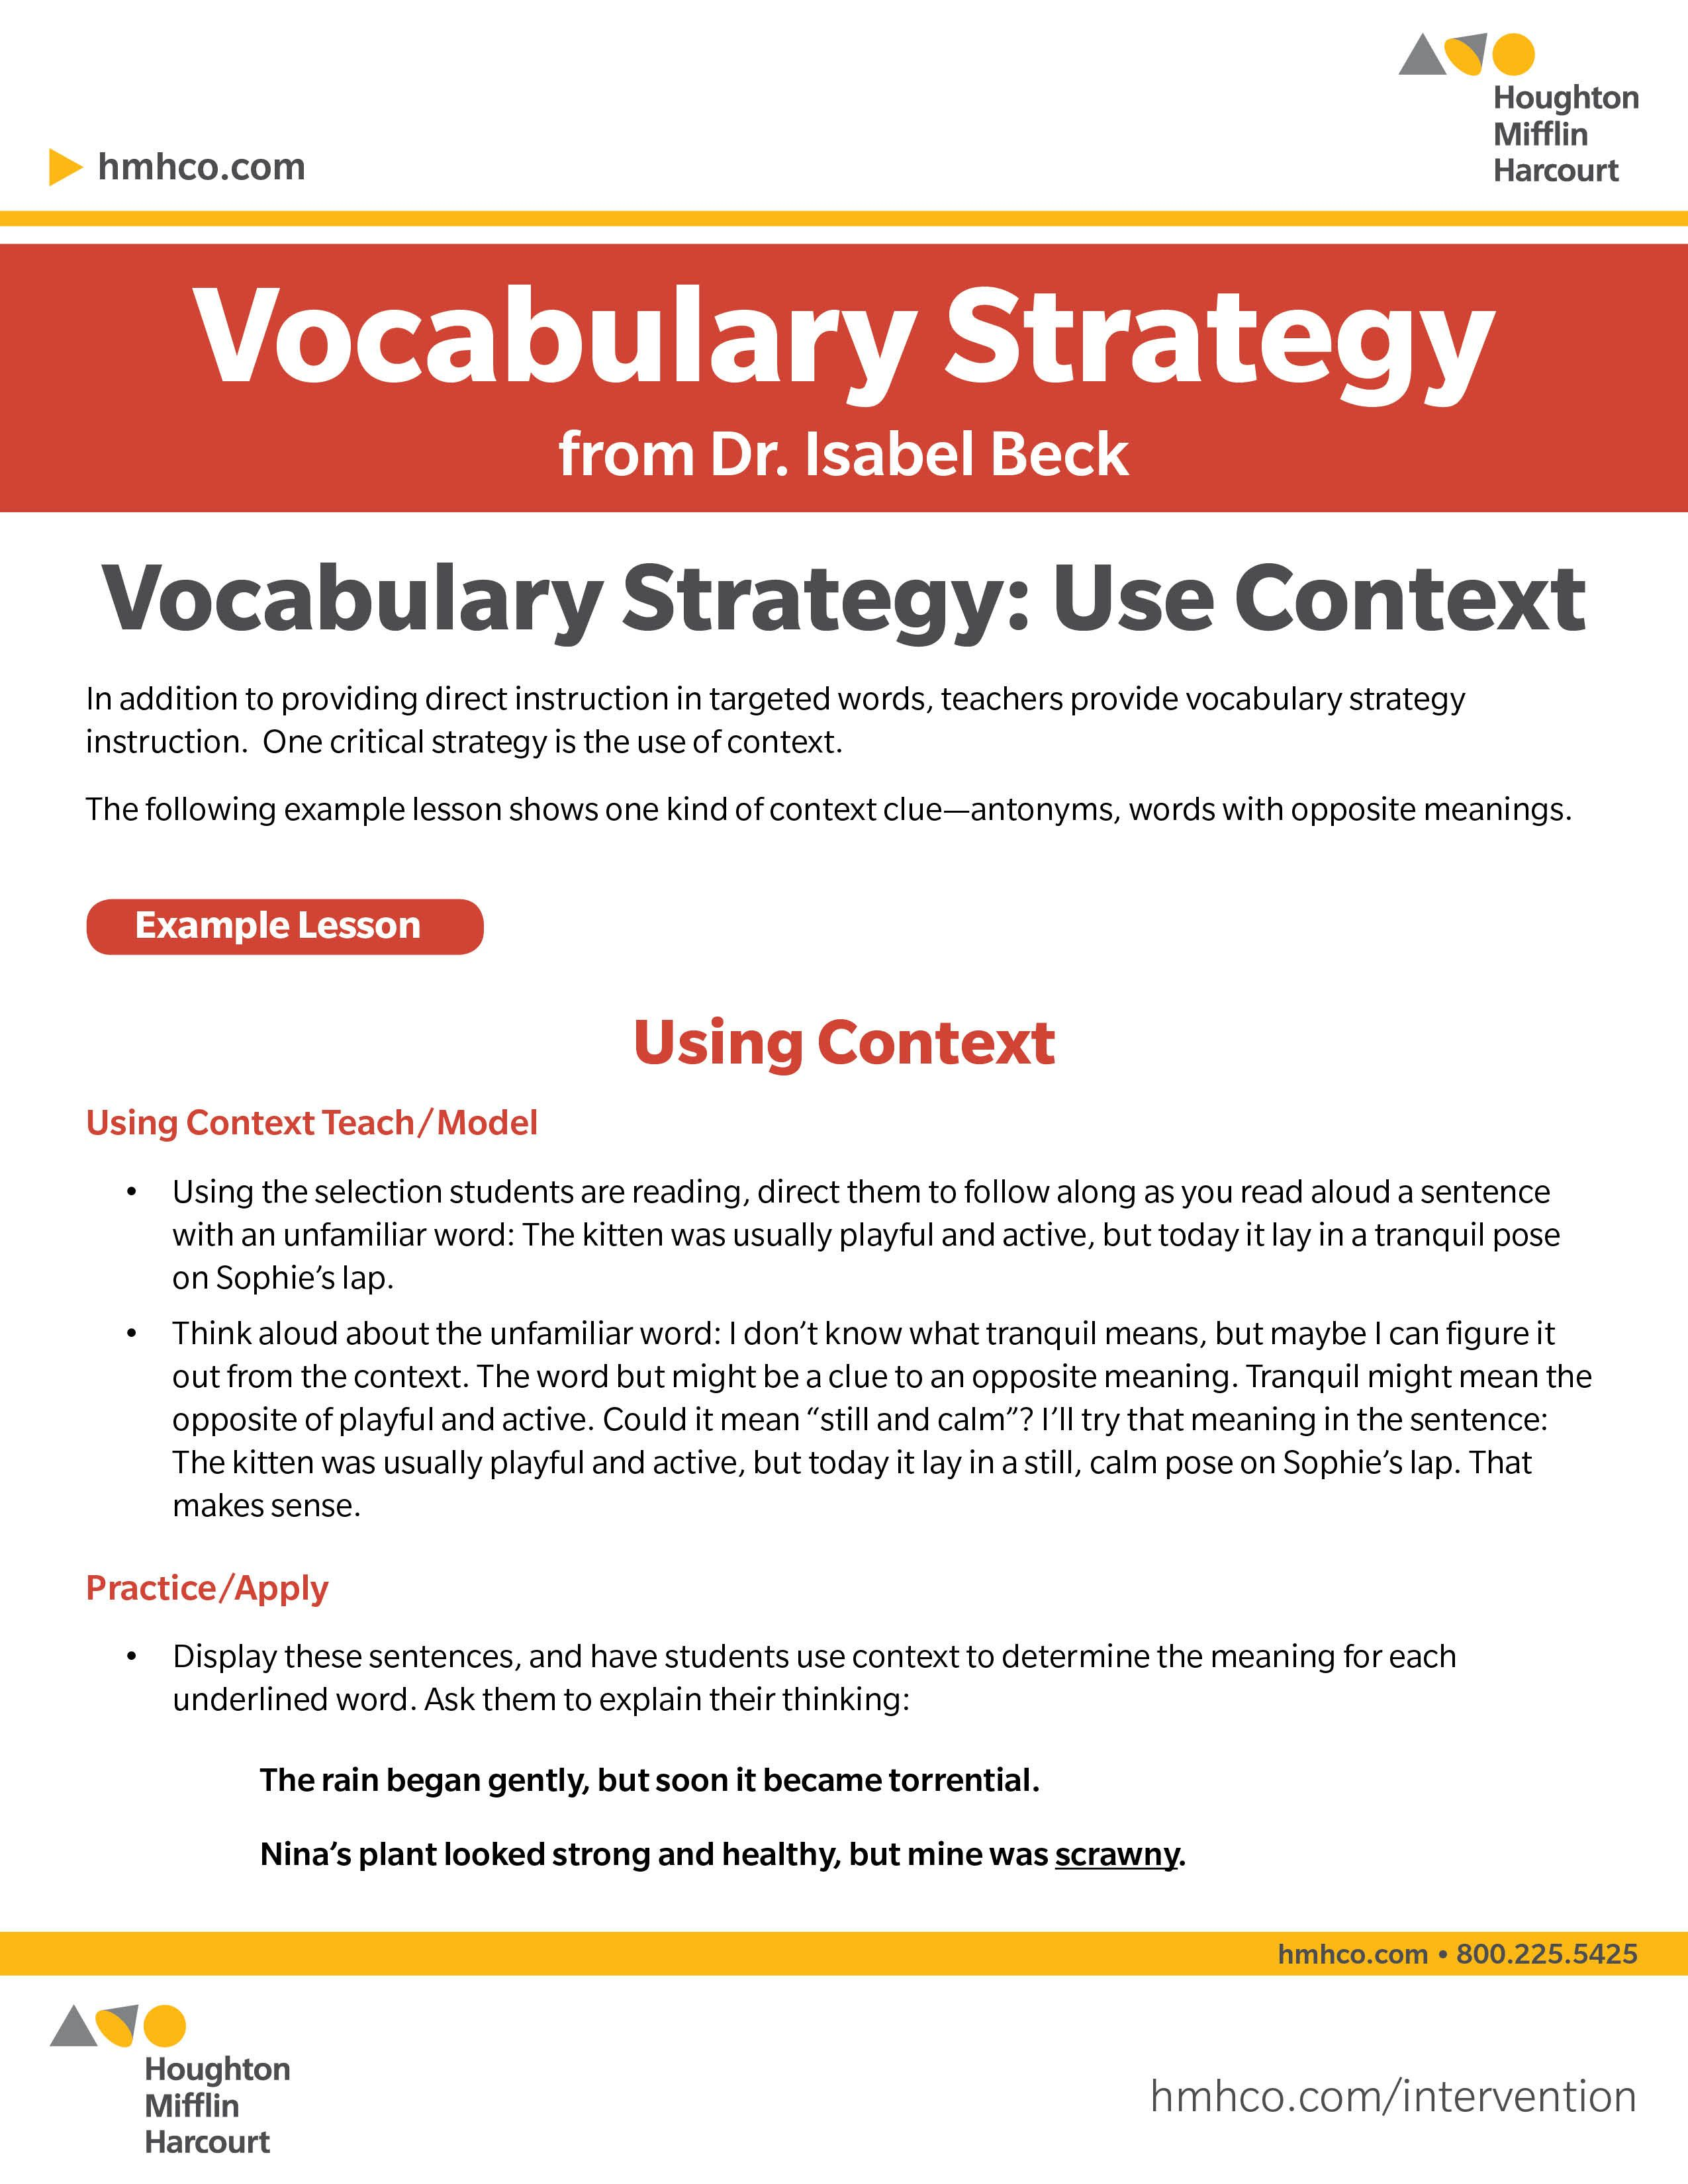 Vocabulary Strategy Use Context Download This Vocabulary